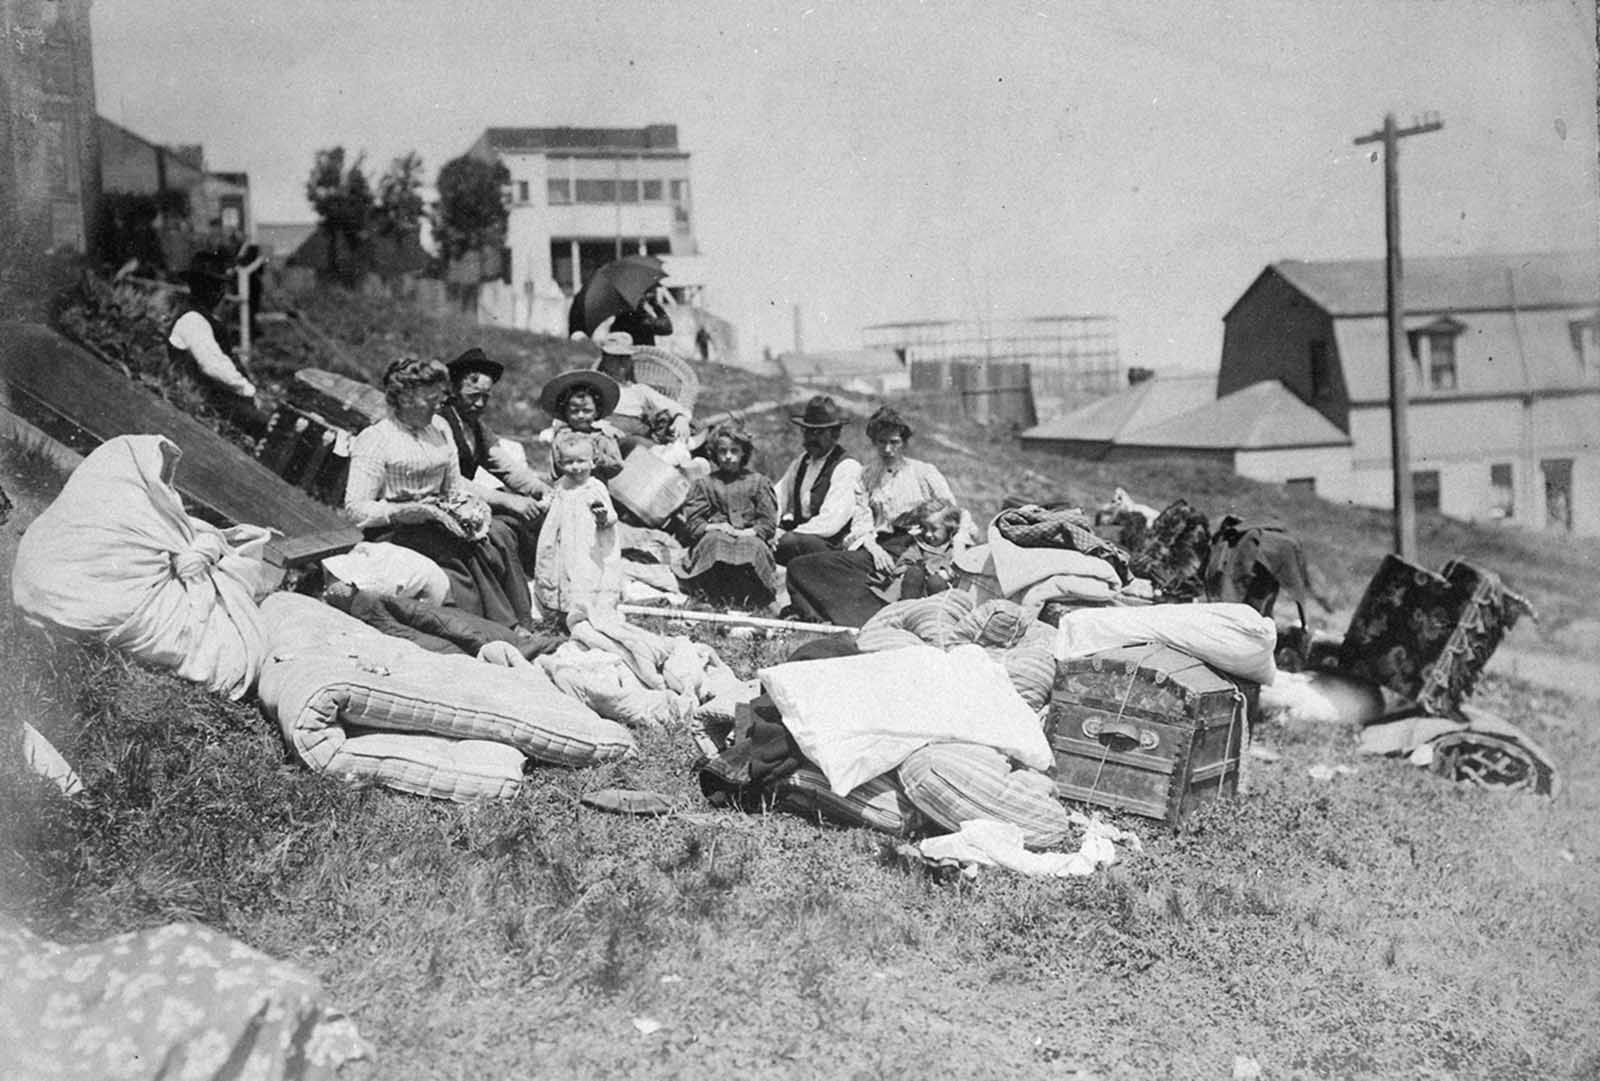 Refugees from the disaster rest on a hillside.